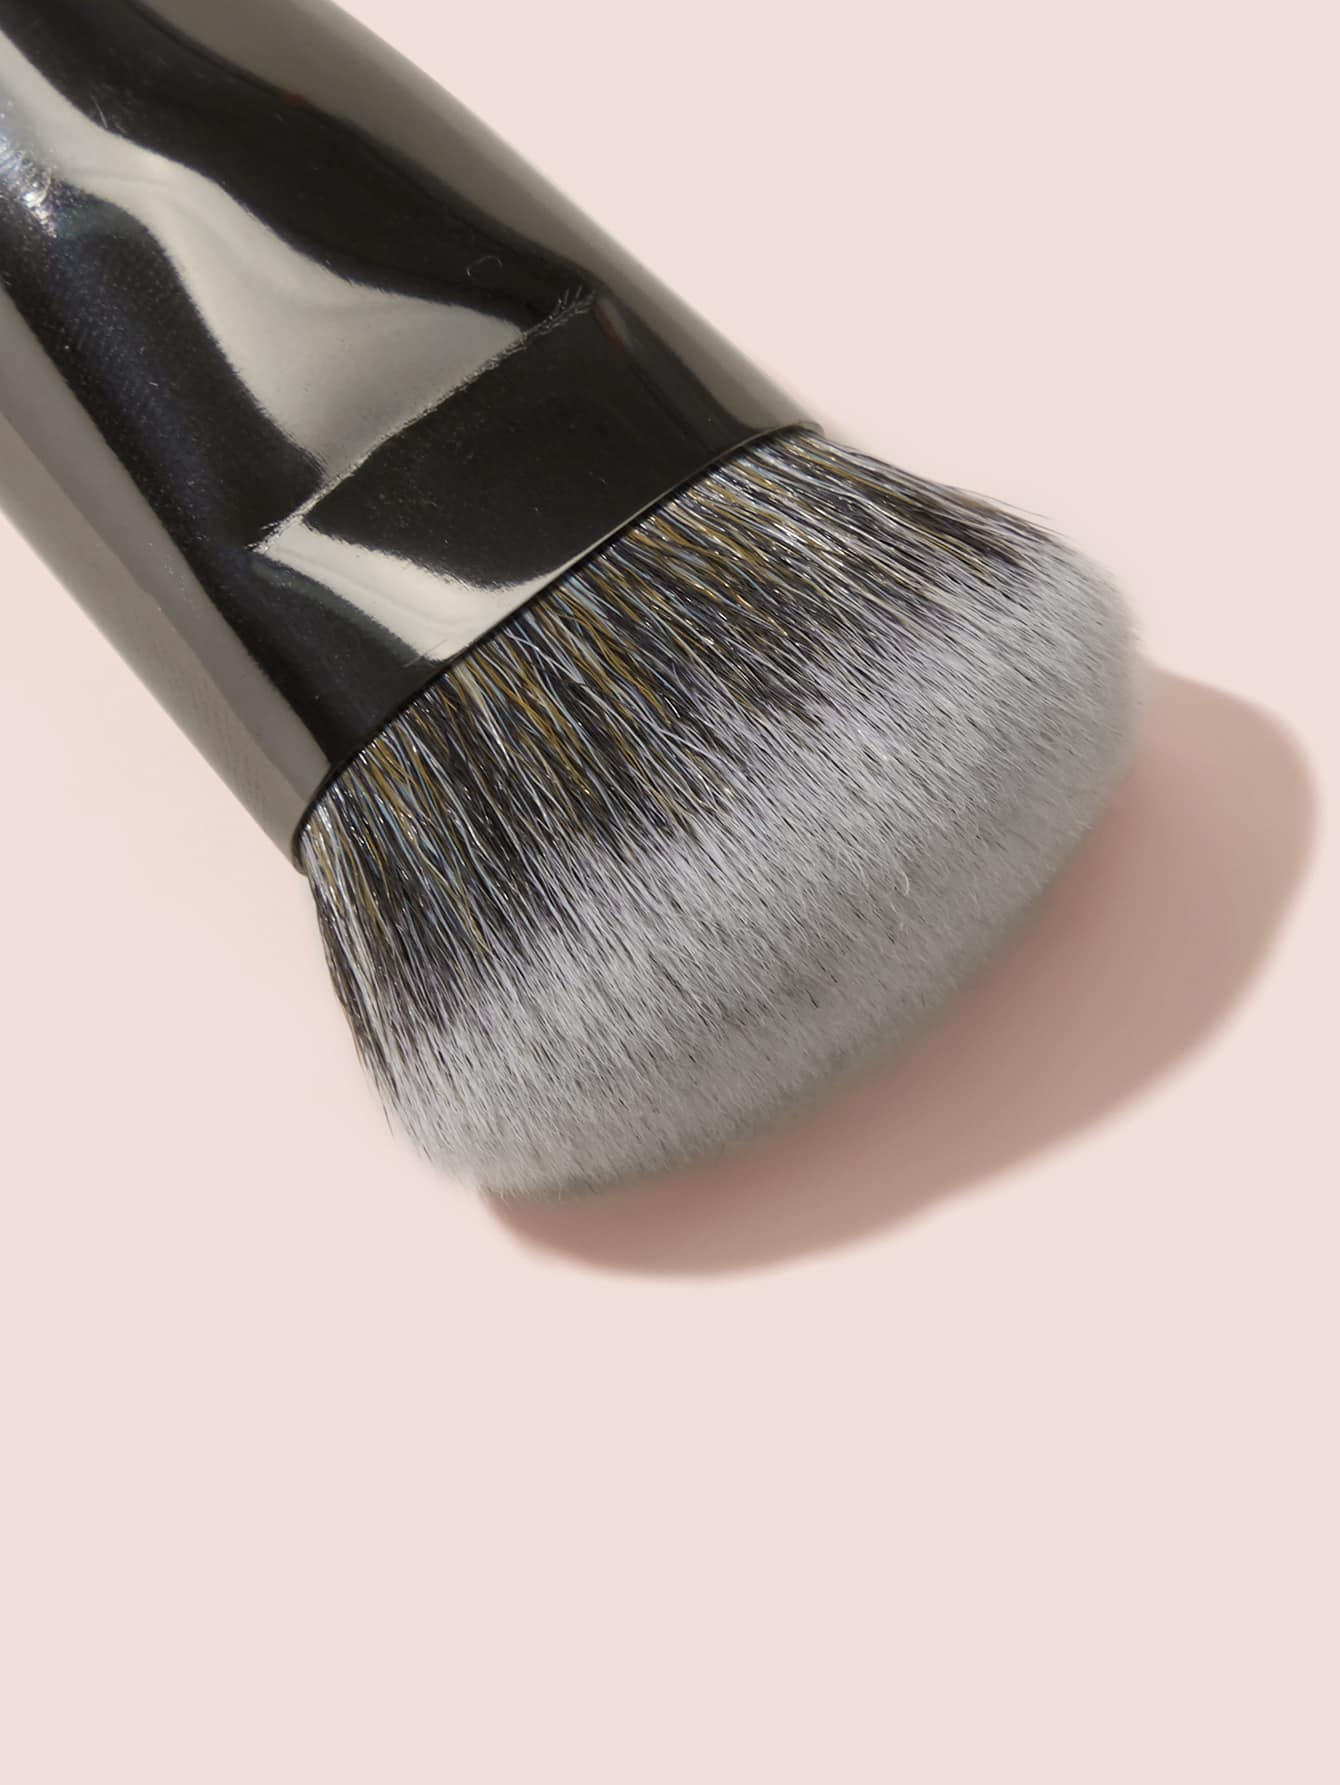 Duo Fiber Powder Makeup Brush